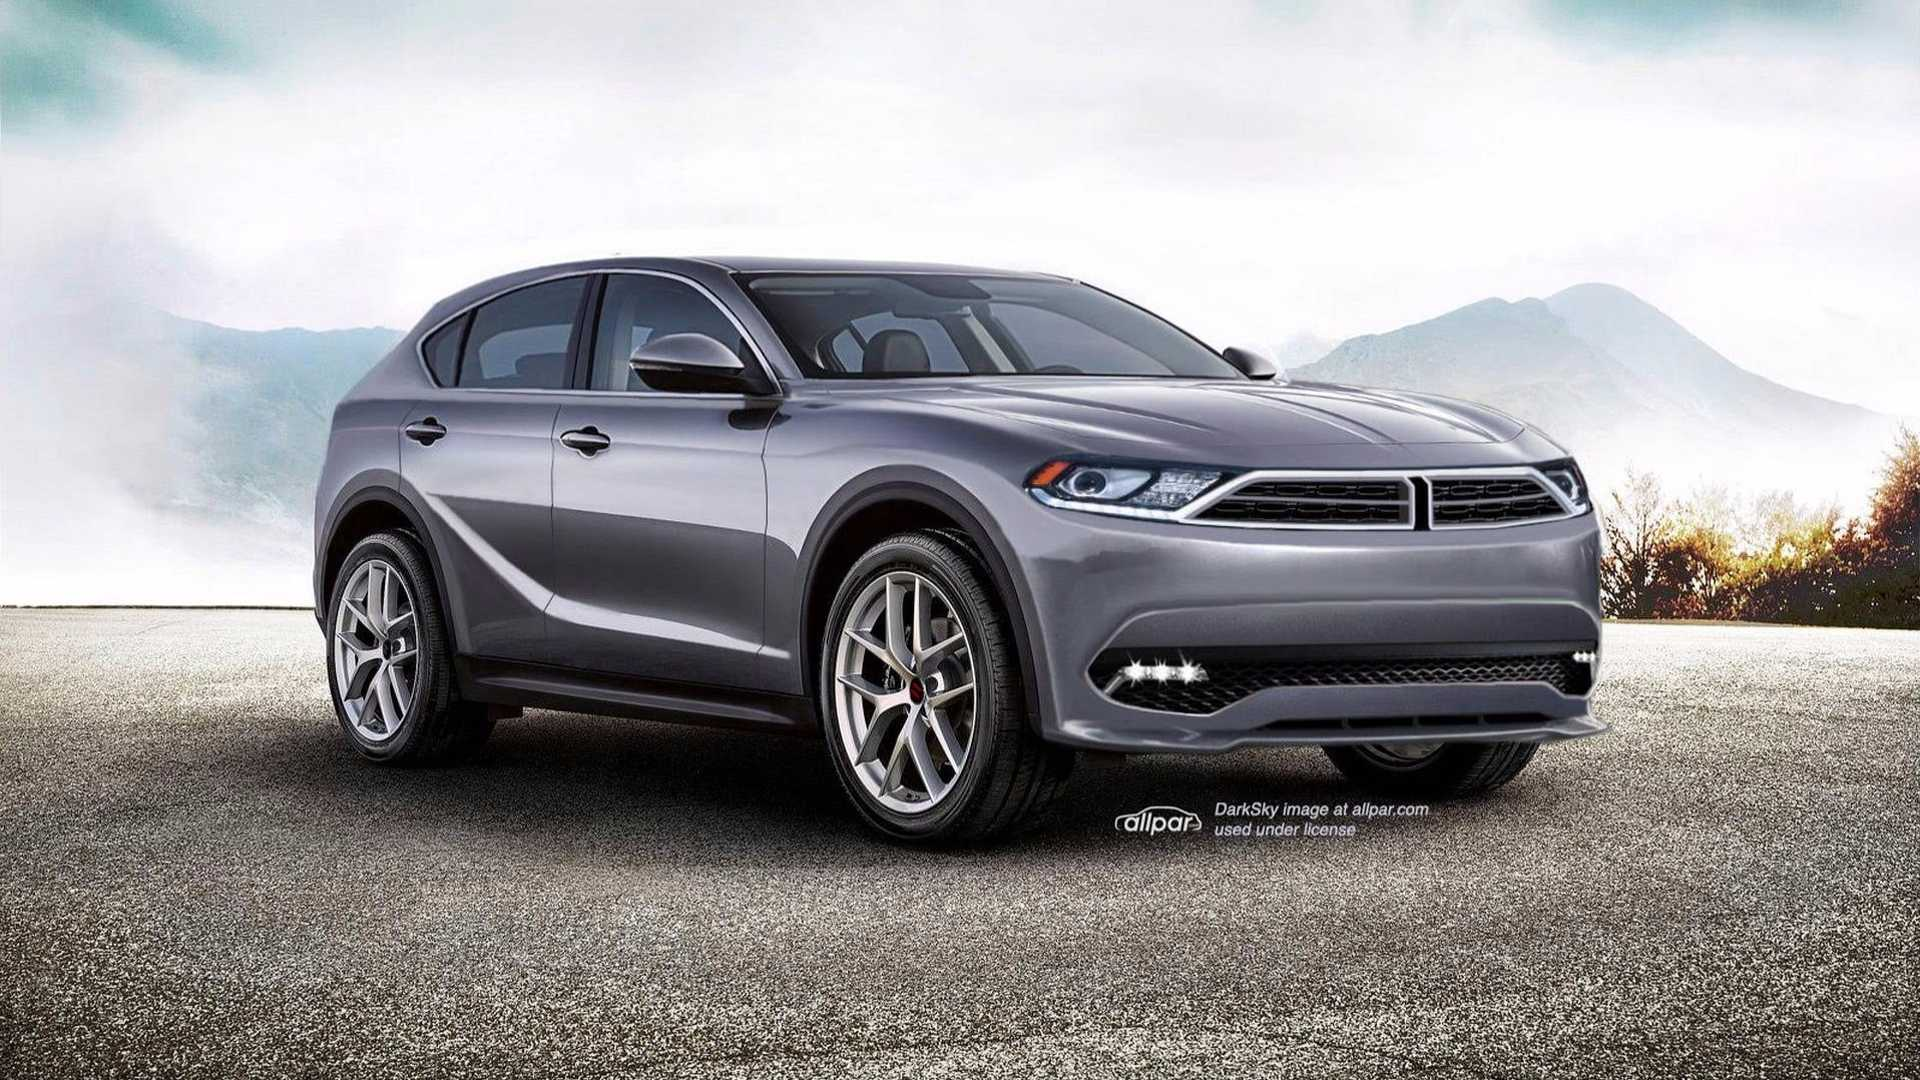 Stelvio Based Dodge Journey Rendered Based On Insider